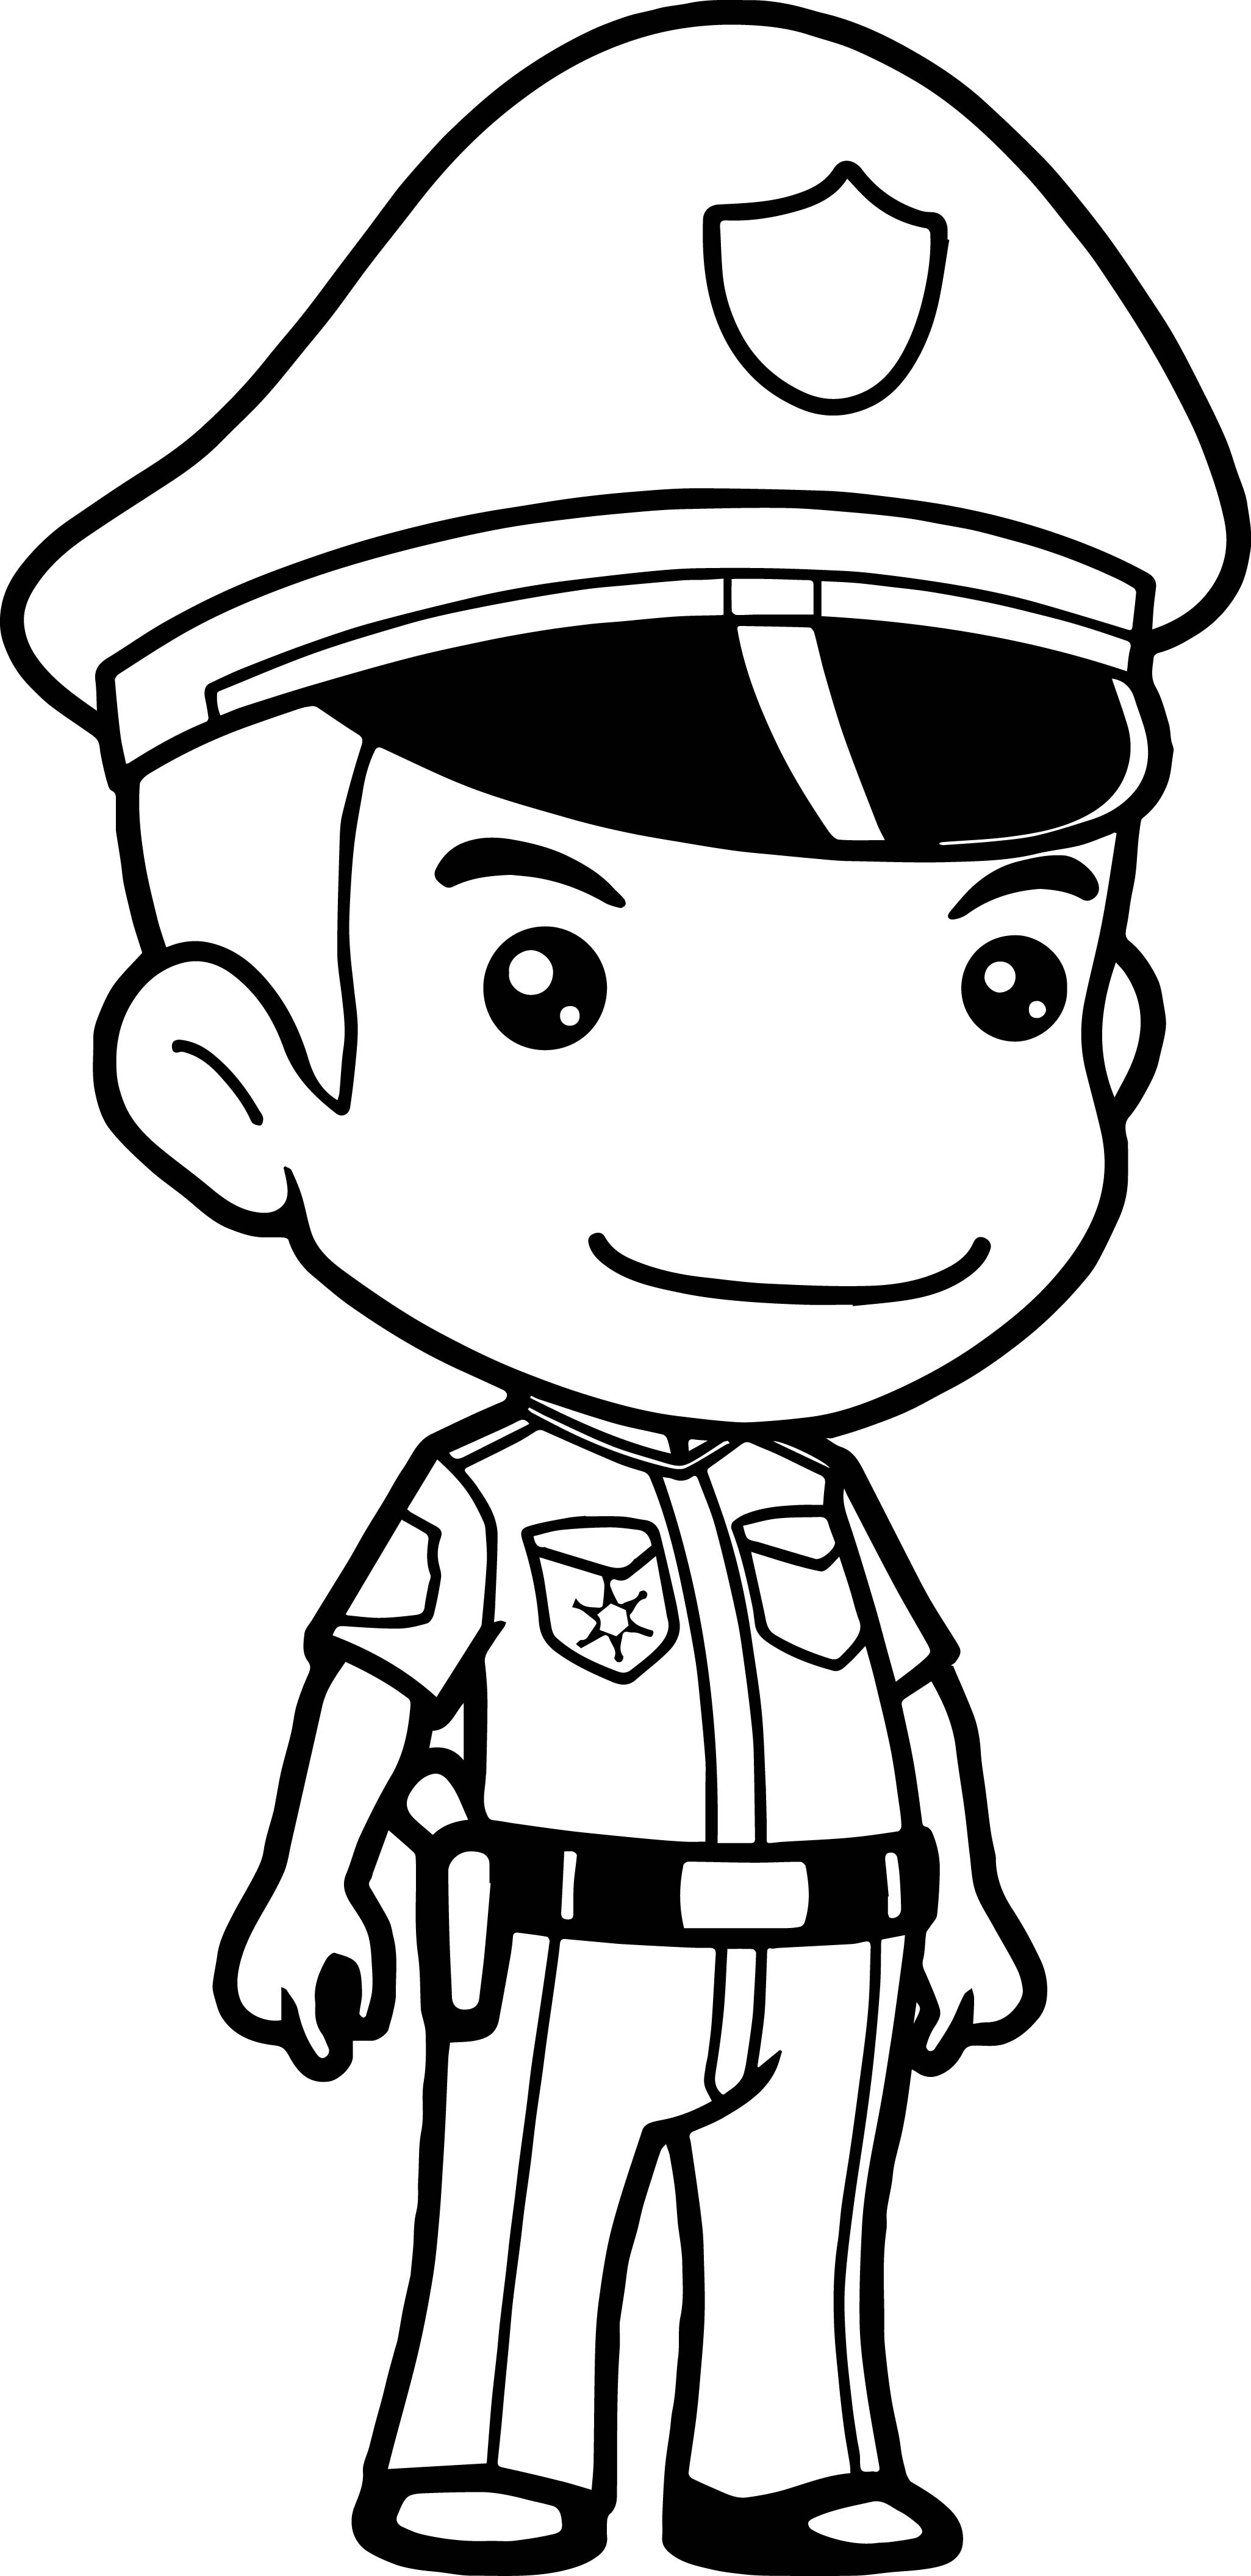 police pictures to colour police officer coloring page coloring pages for kids colour pictures to police